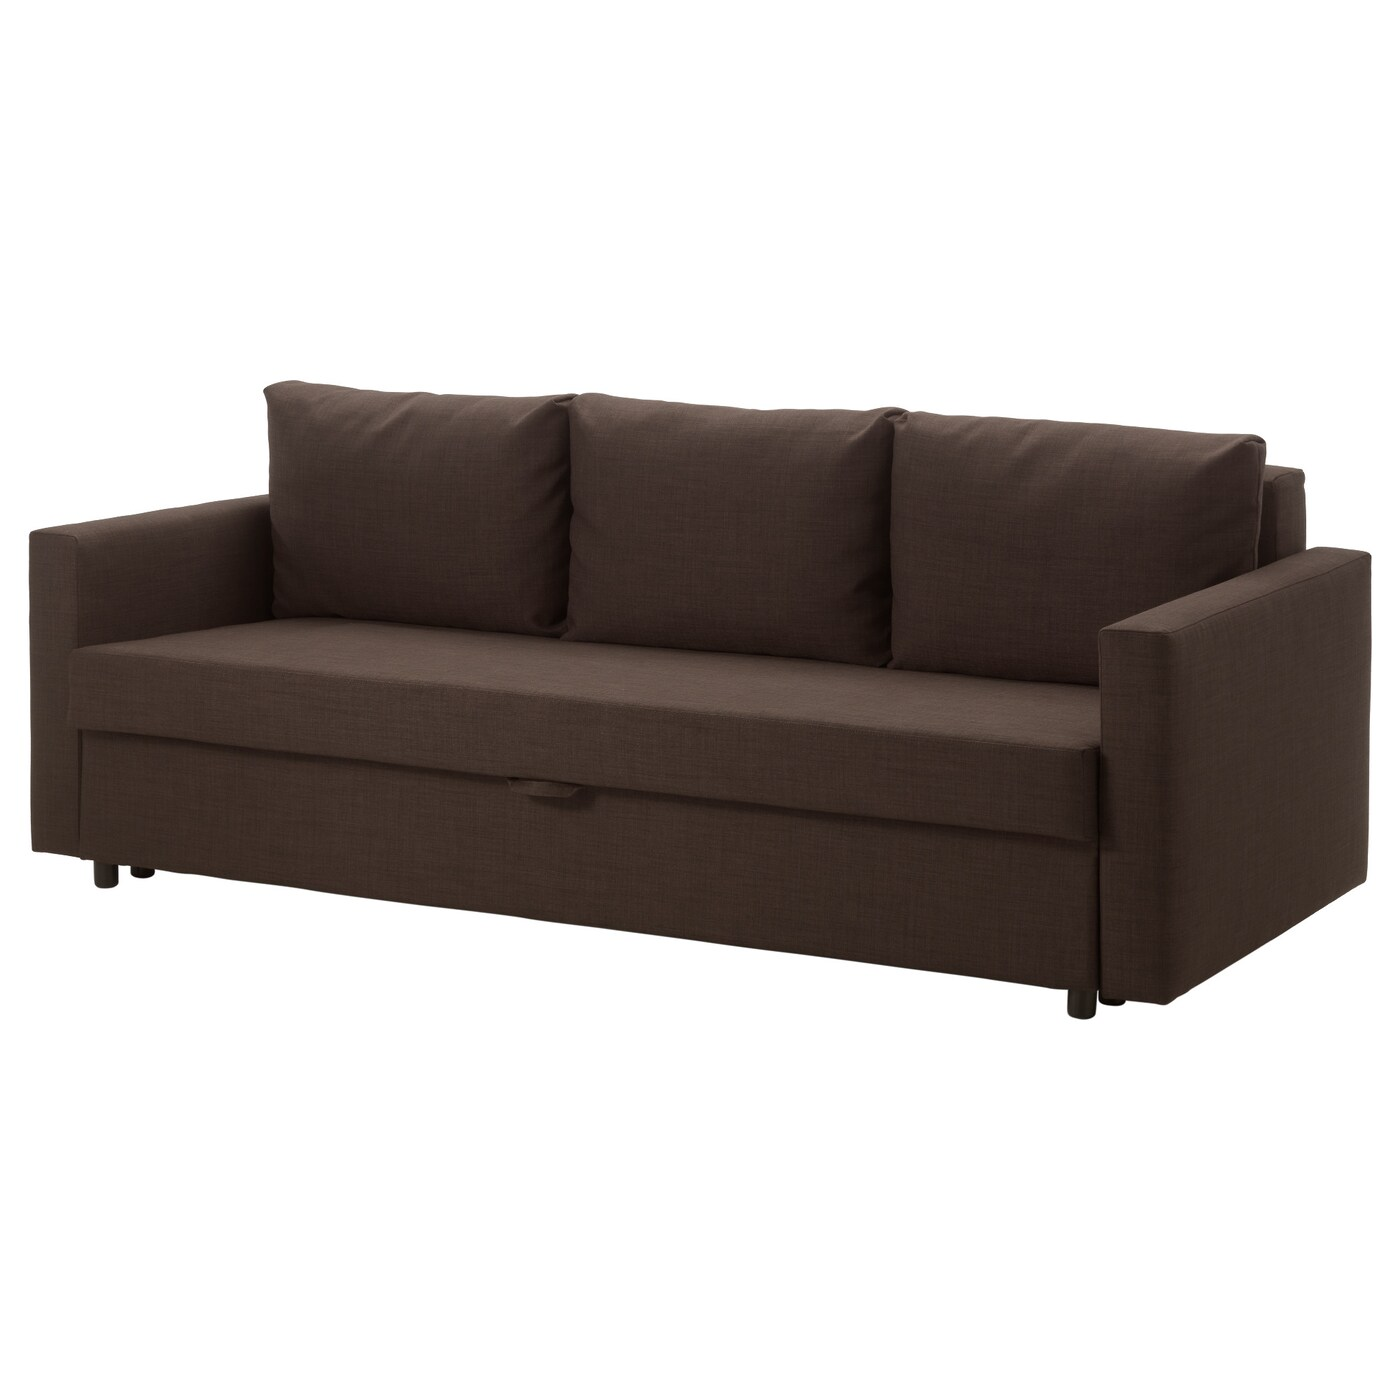 Friheten three seat sofa bed skiftebo brown ikea for 90 cm sofa bed